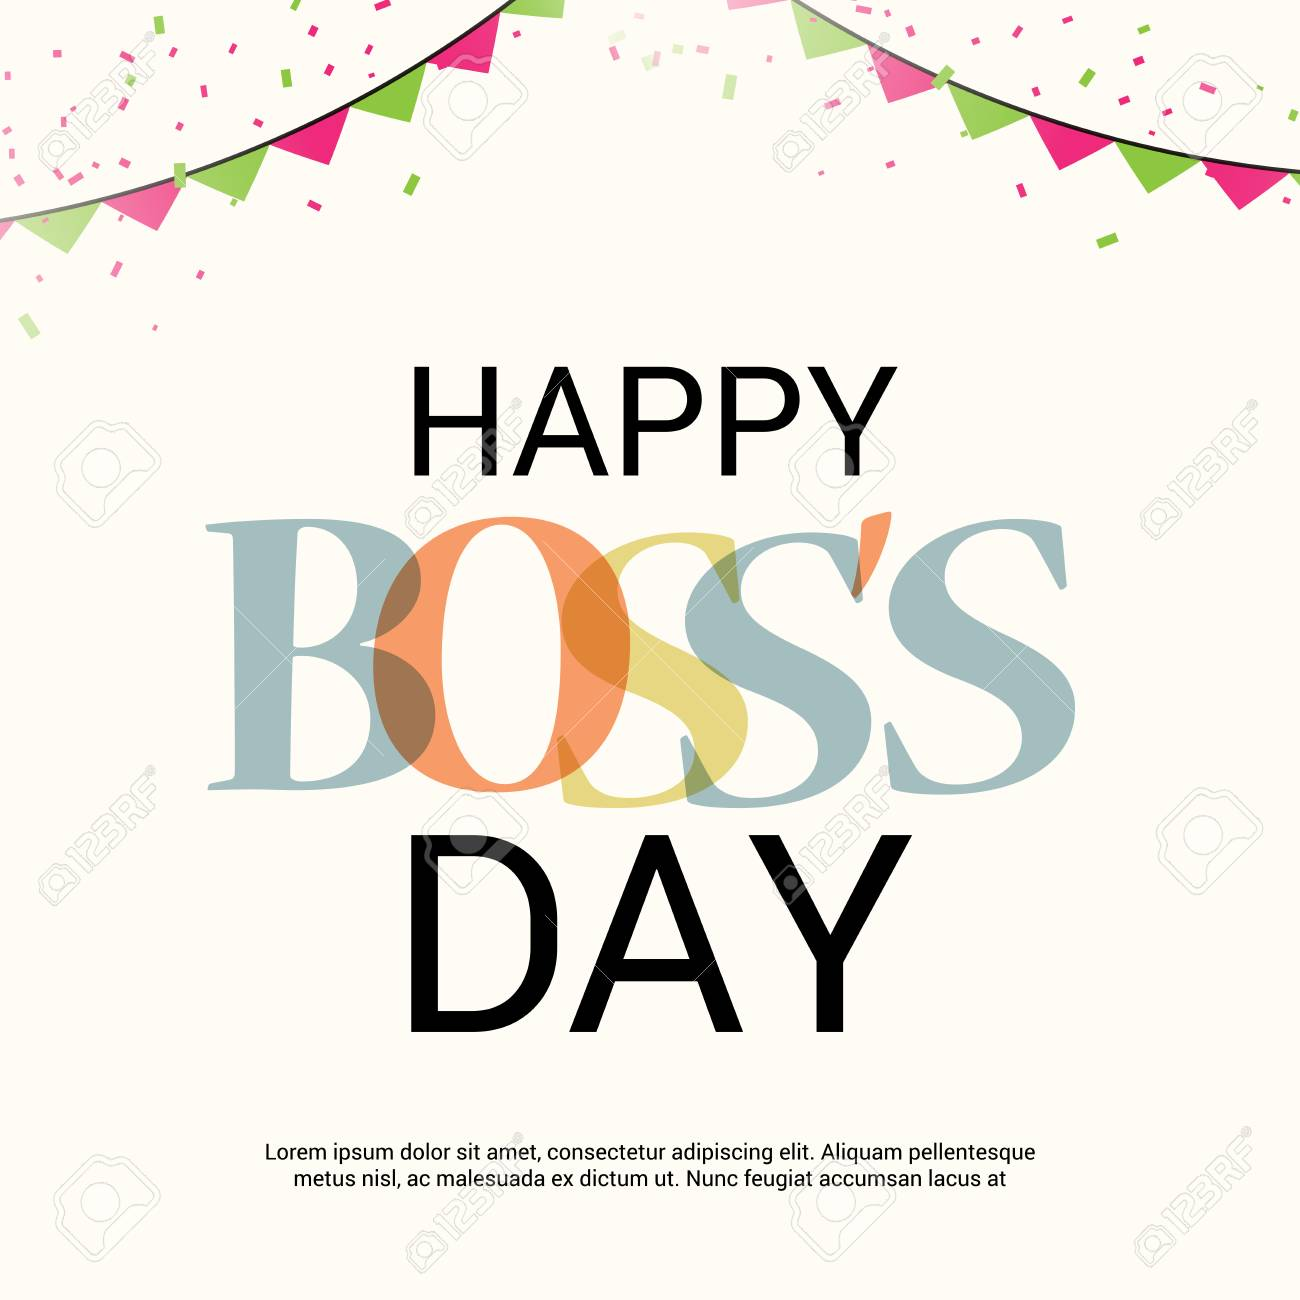 Happy Boss's Day..